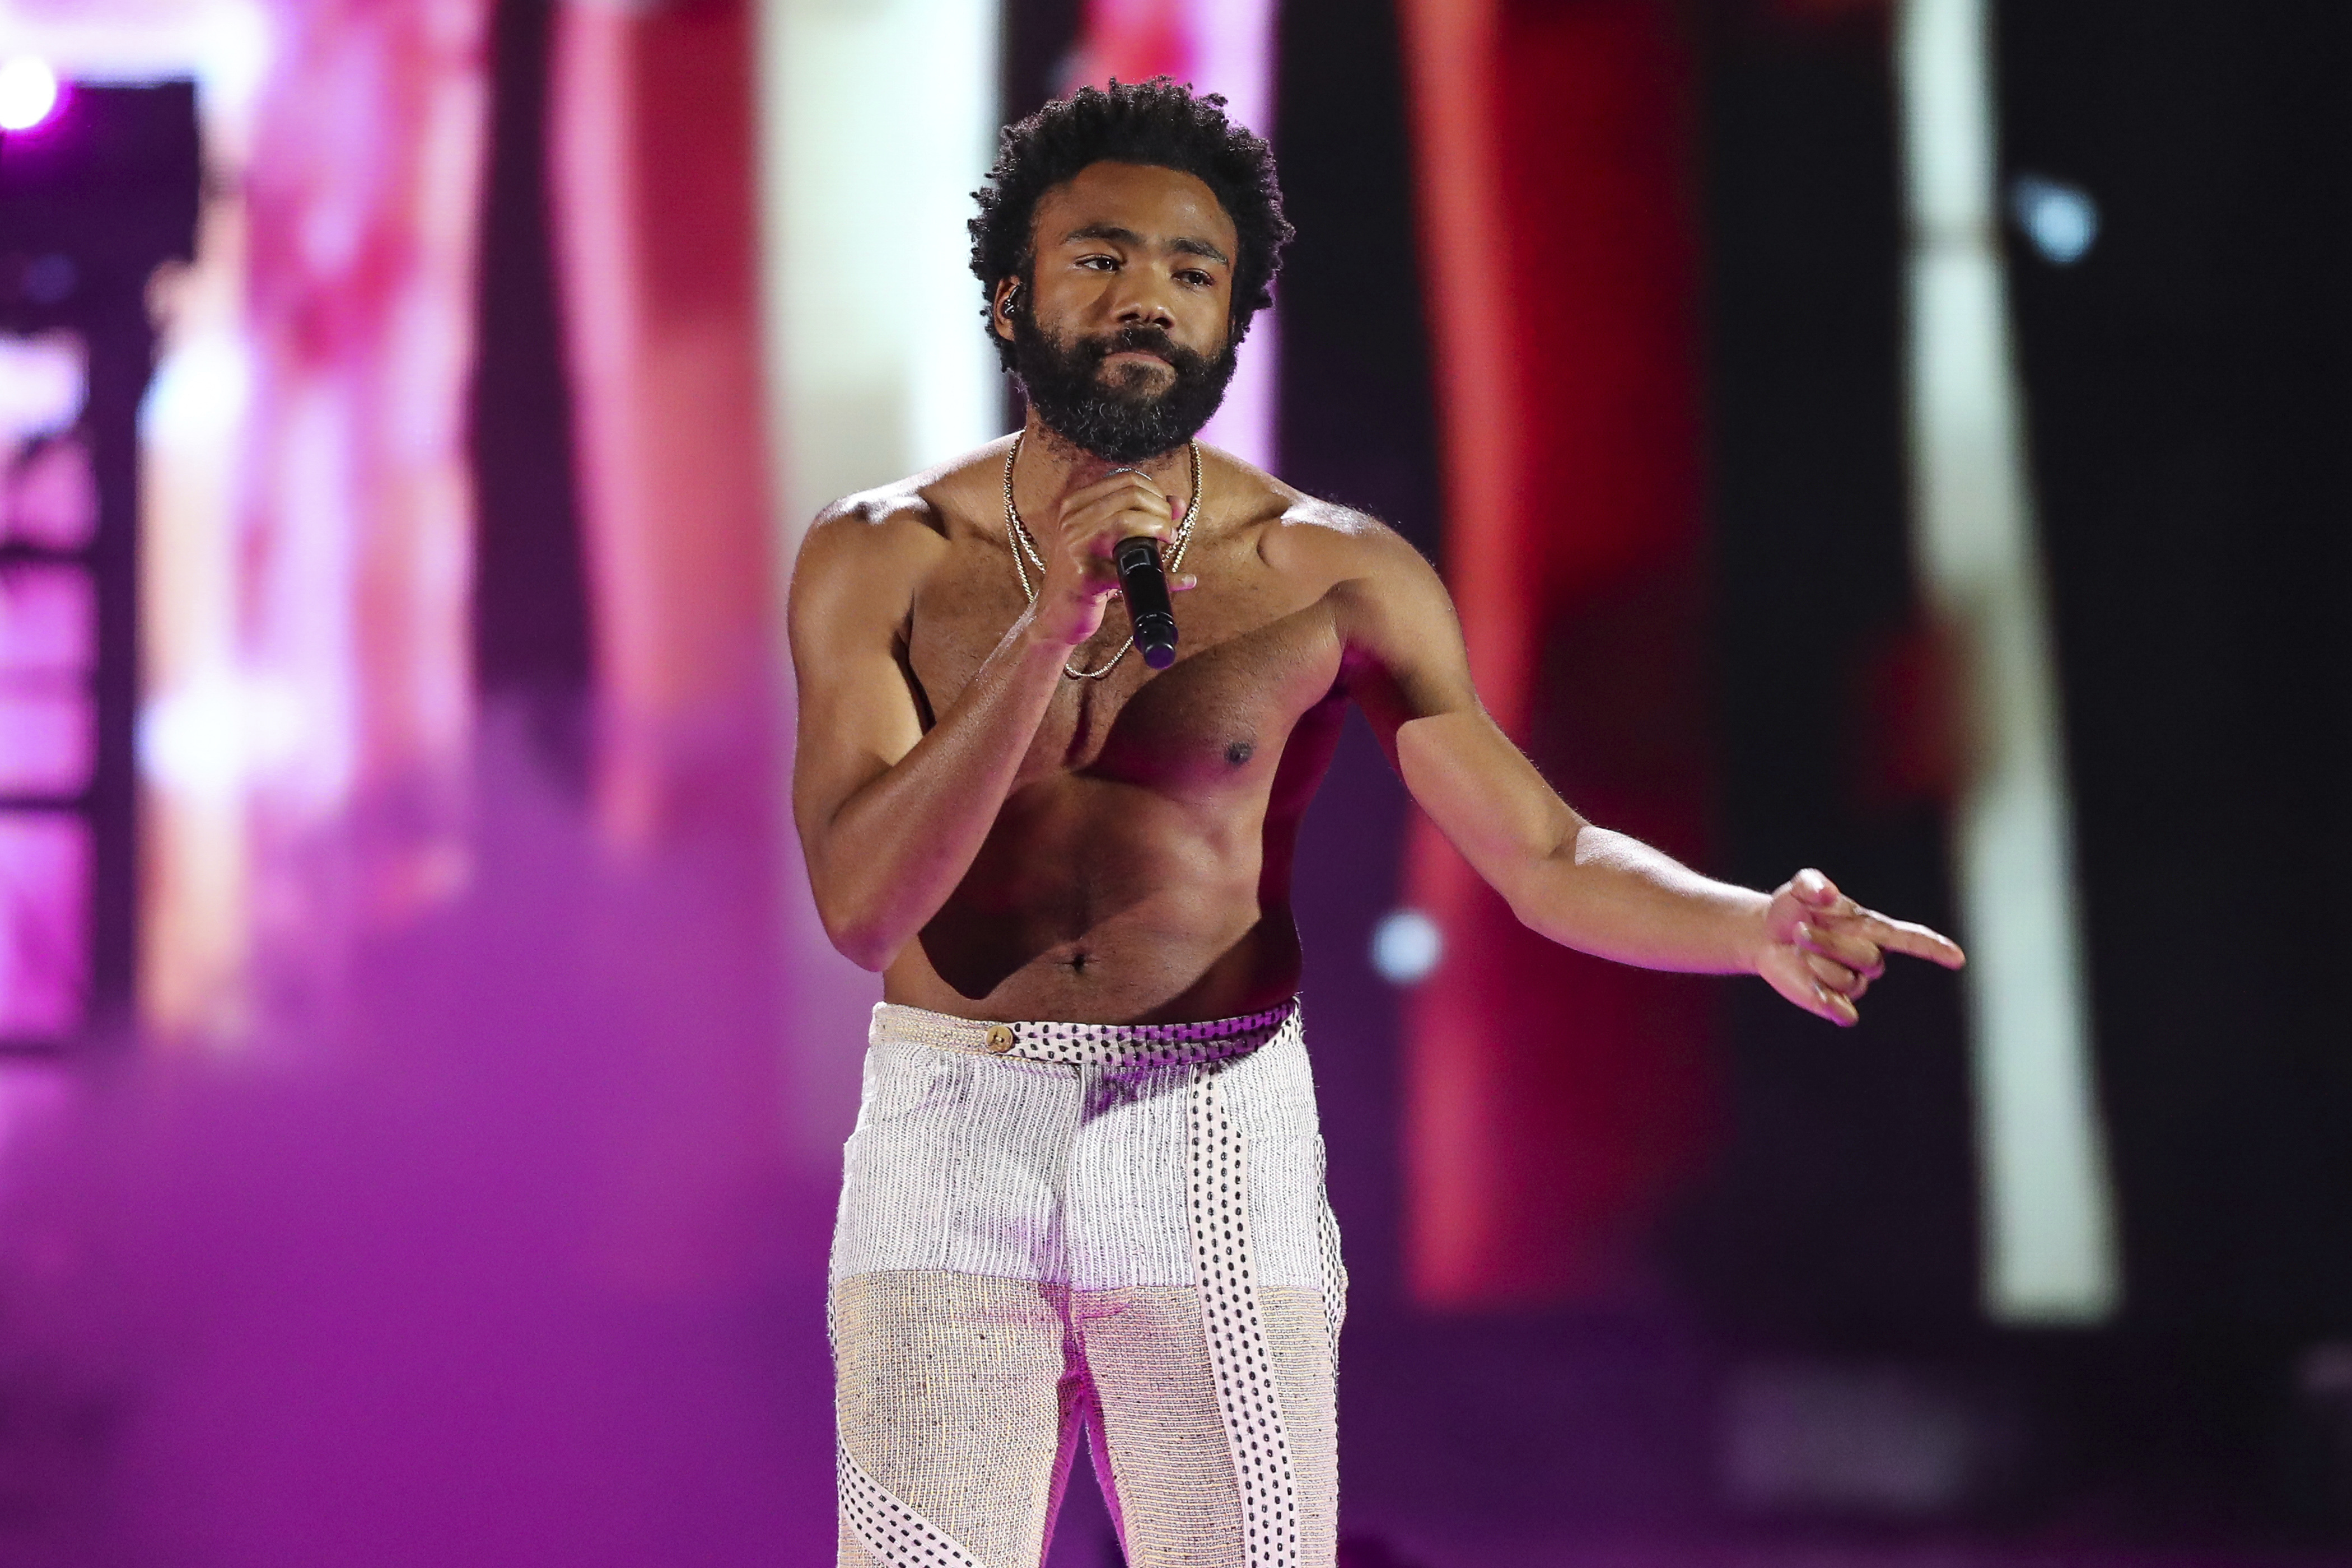 FILE - In this Friday, Sept. 21, 2018 file photo, Childish Gambino performs at the 2018 iHeartRadio Music Festival Day 1 held at T-Mobile Arena in Las Vegas. (Photo by John Salangsang/Invision/AP, File)